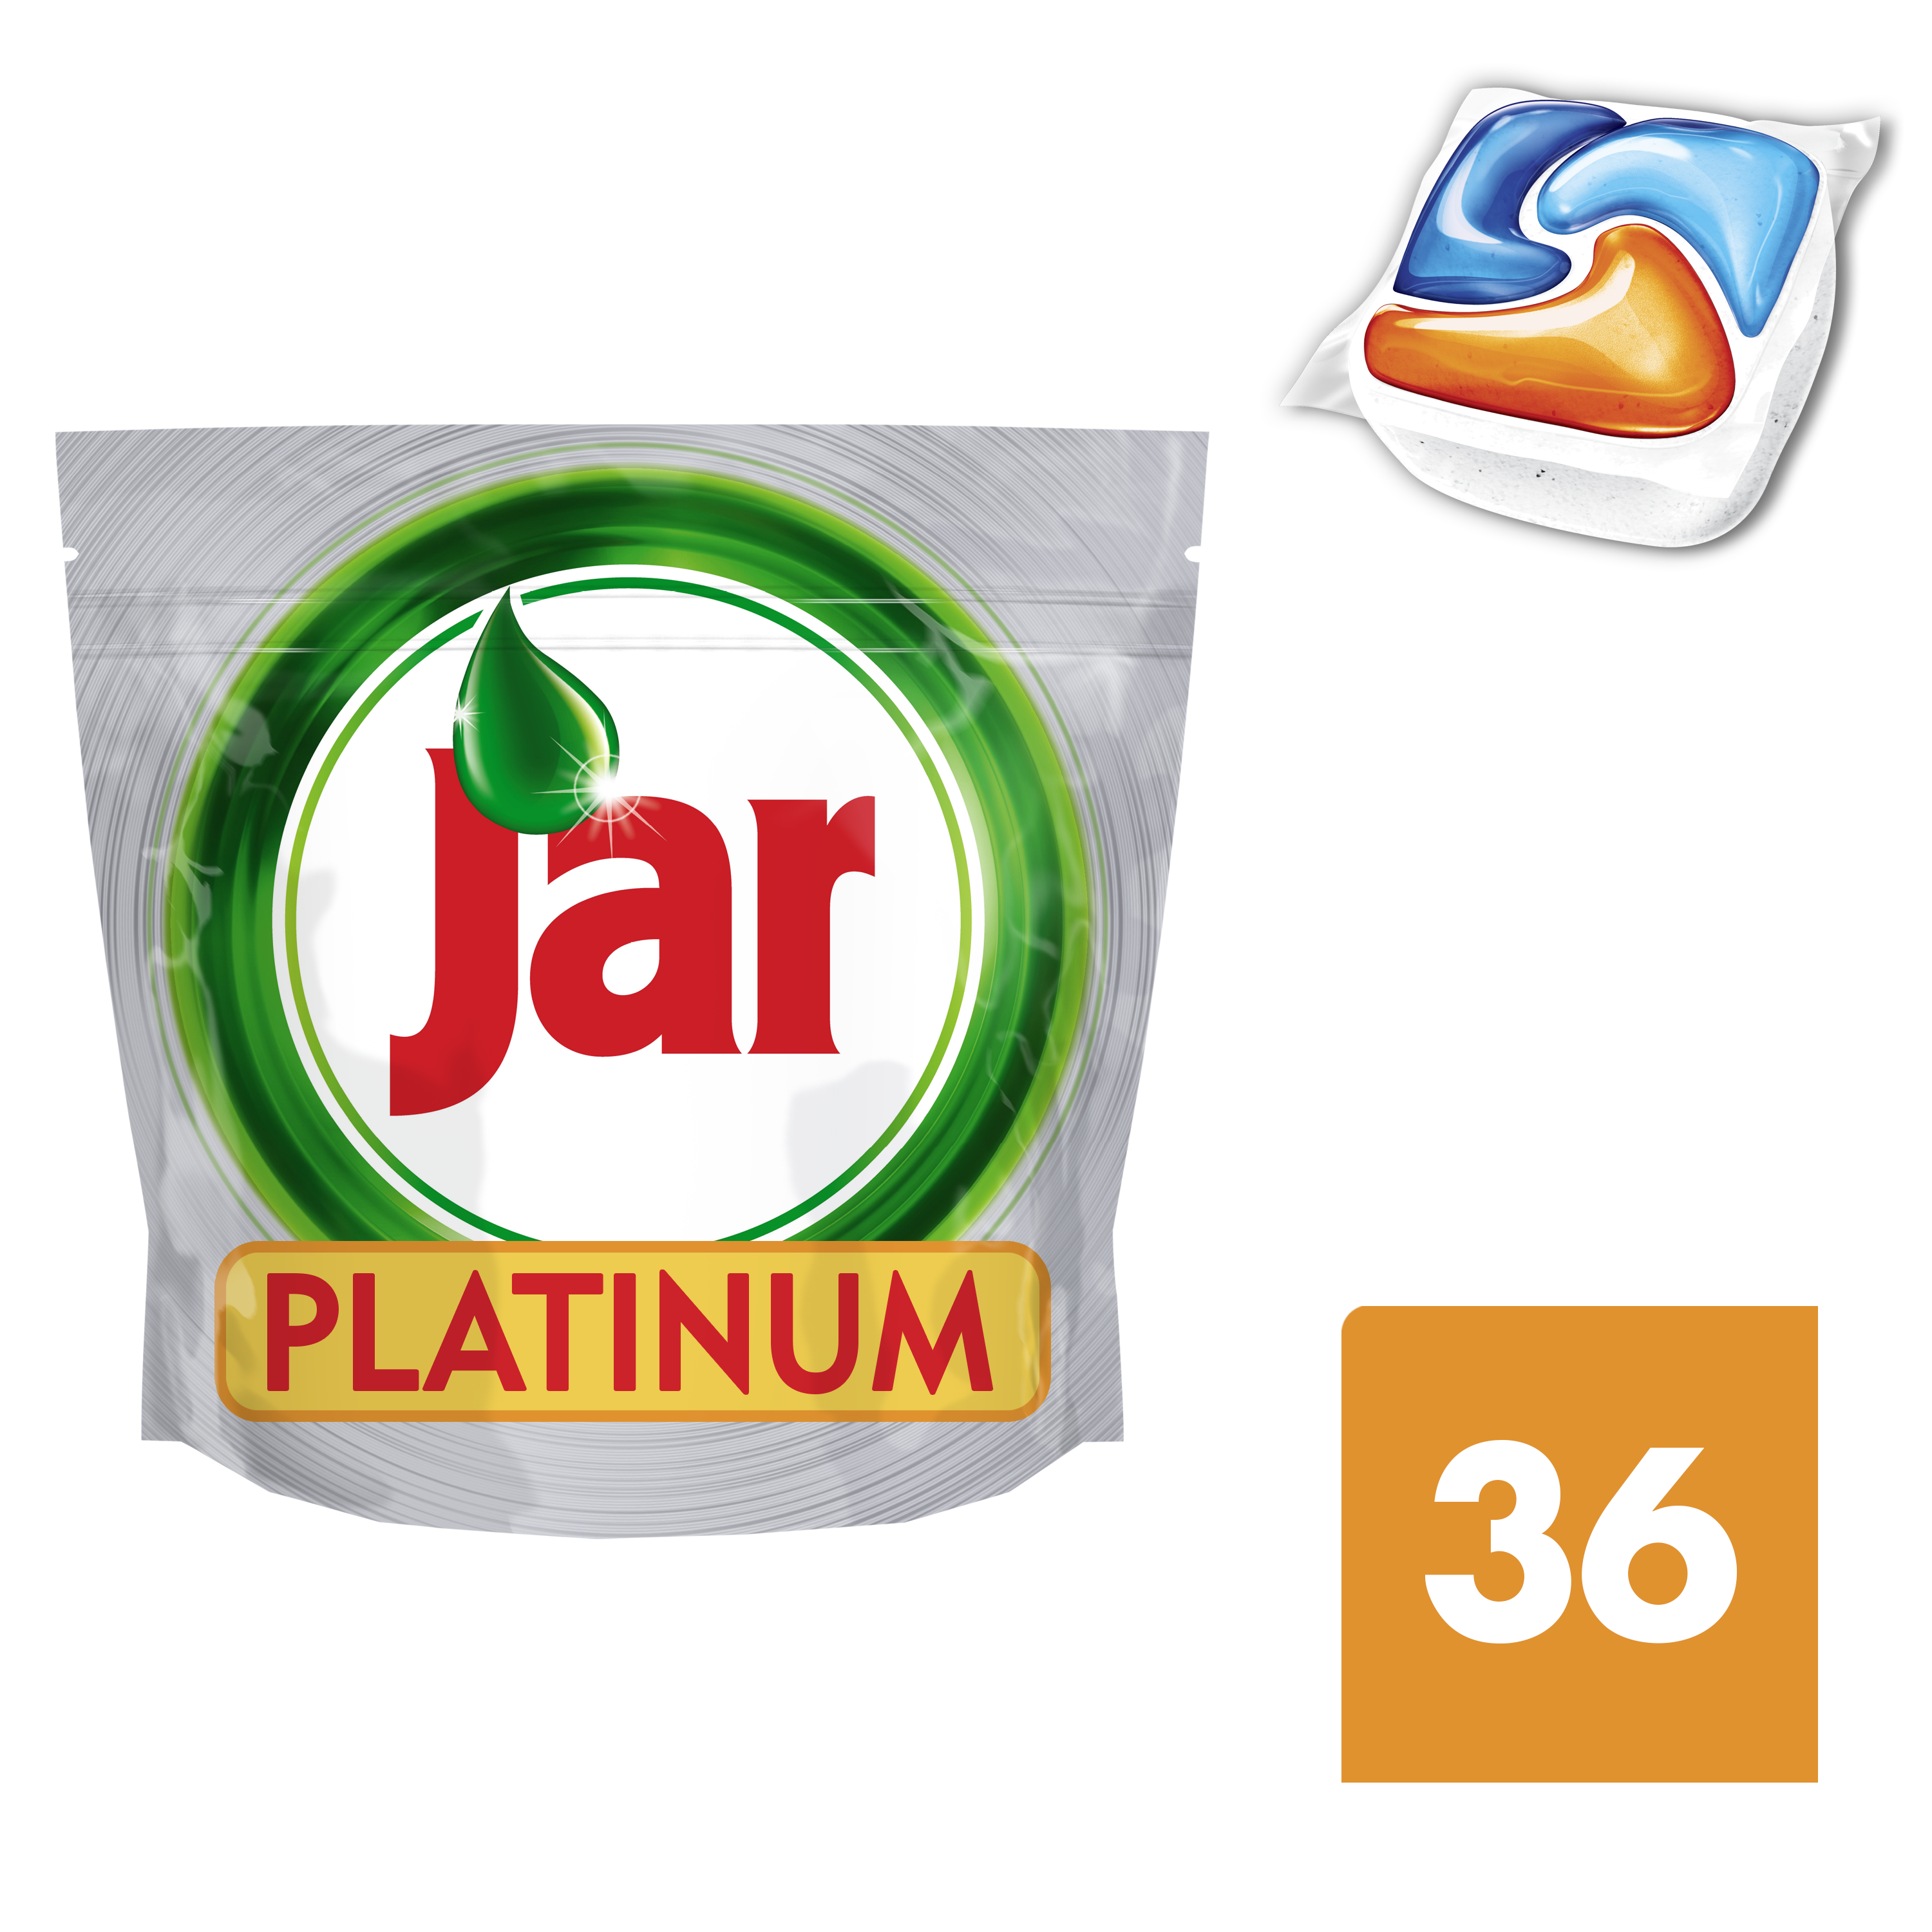 JAR Platinum Orange 36ks - kapsle do myčky